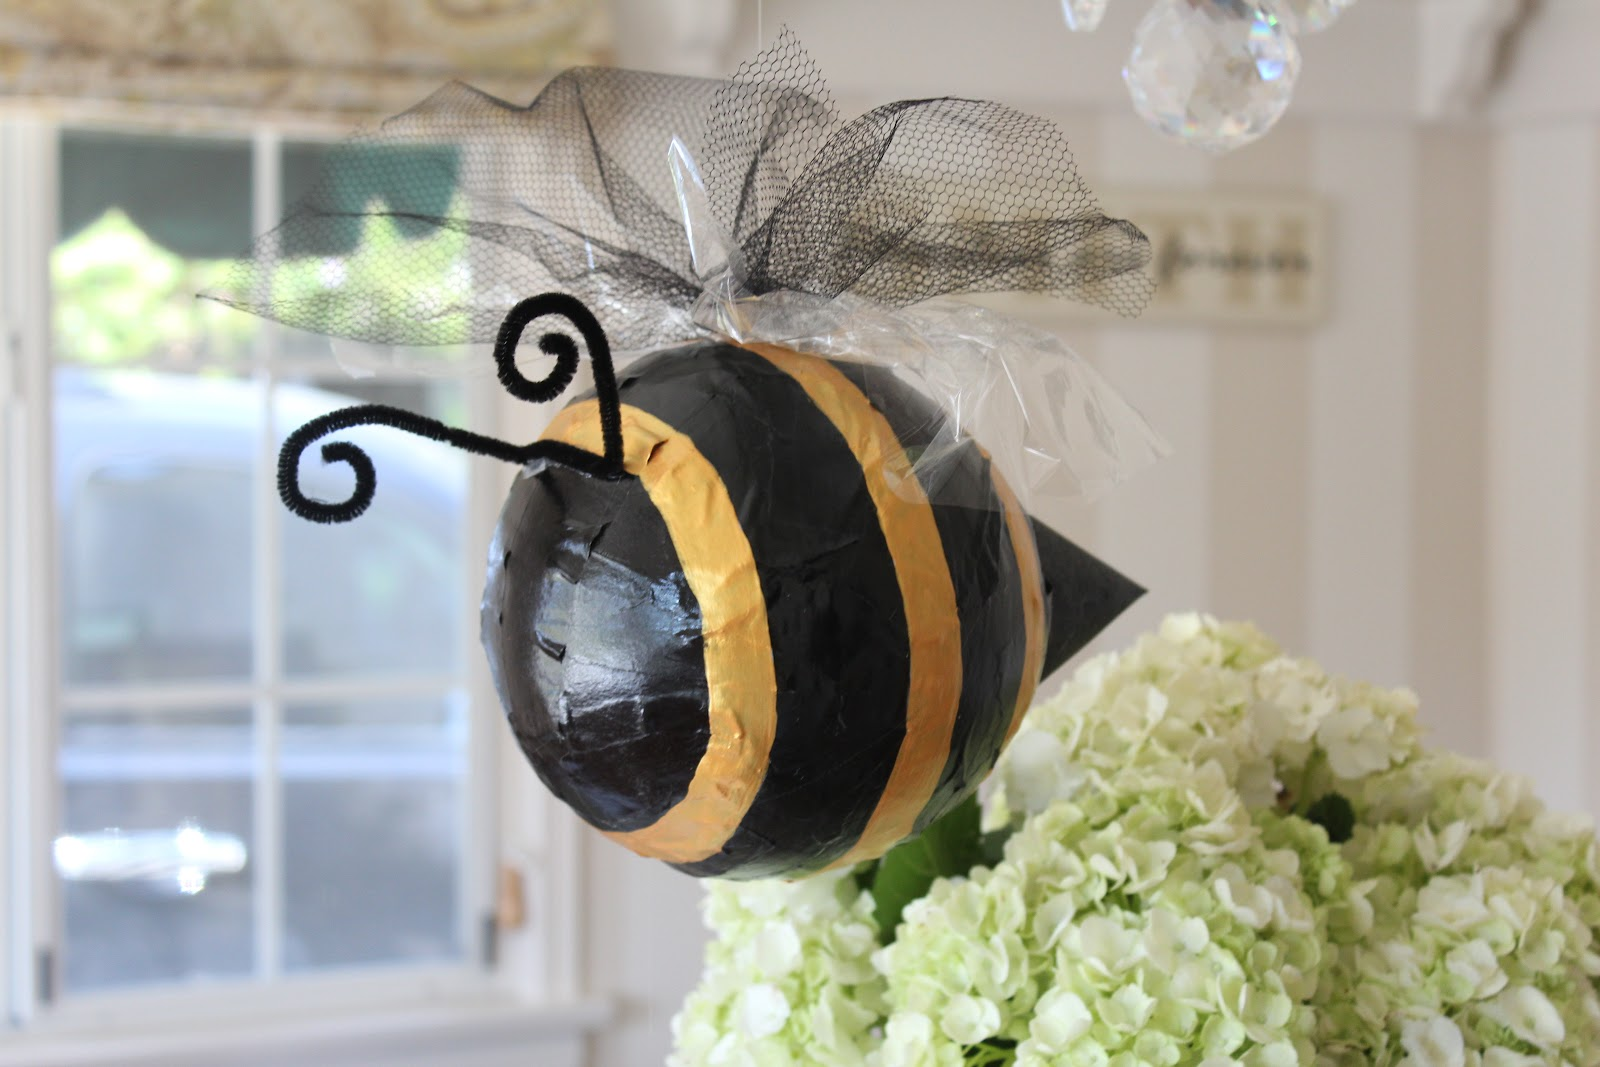 She Made The Adorable Paper Mache Bees For Decorations And Centerpieces Wrapped Tin Cans With Twine To Continue Vintage Feel On Tables